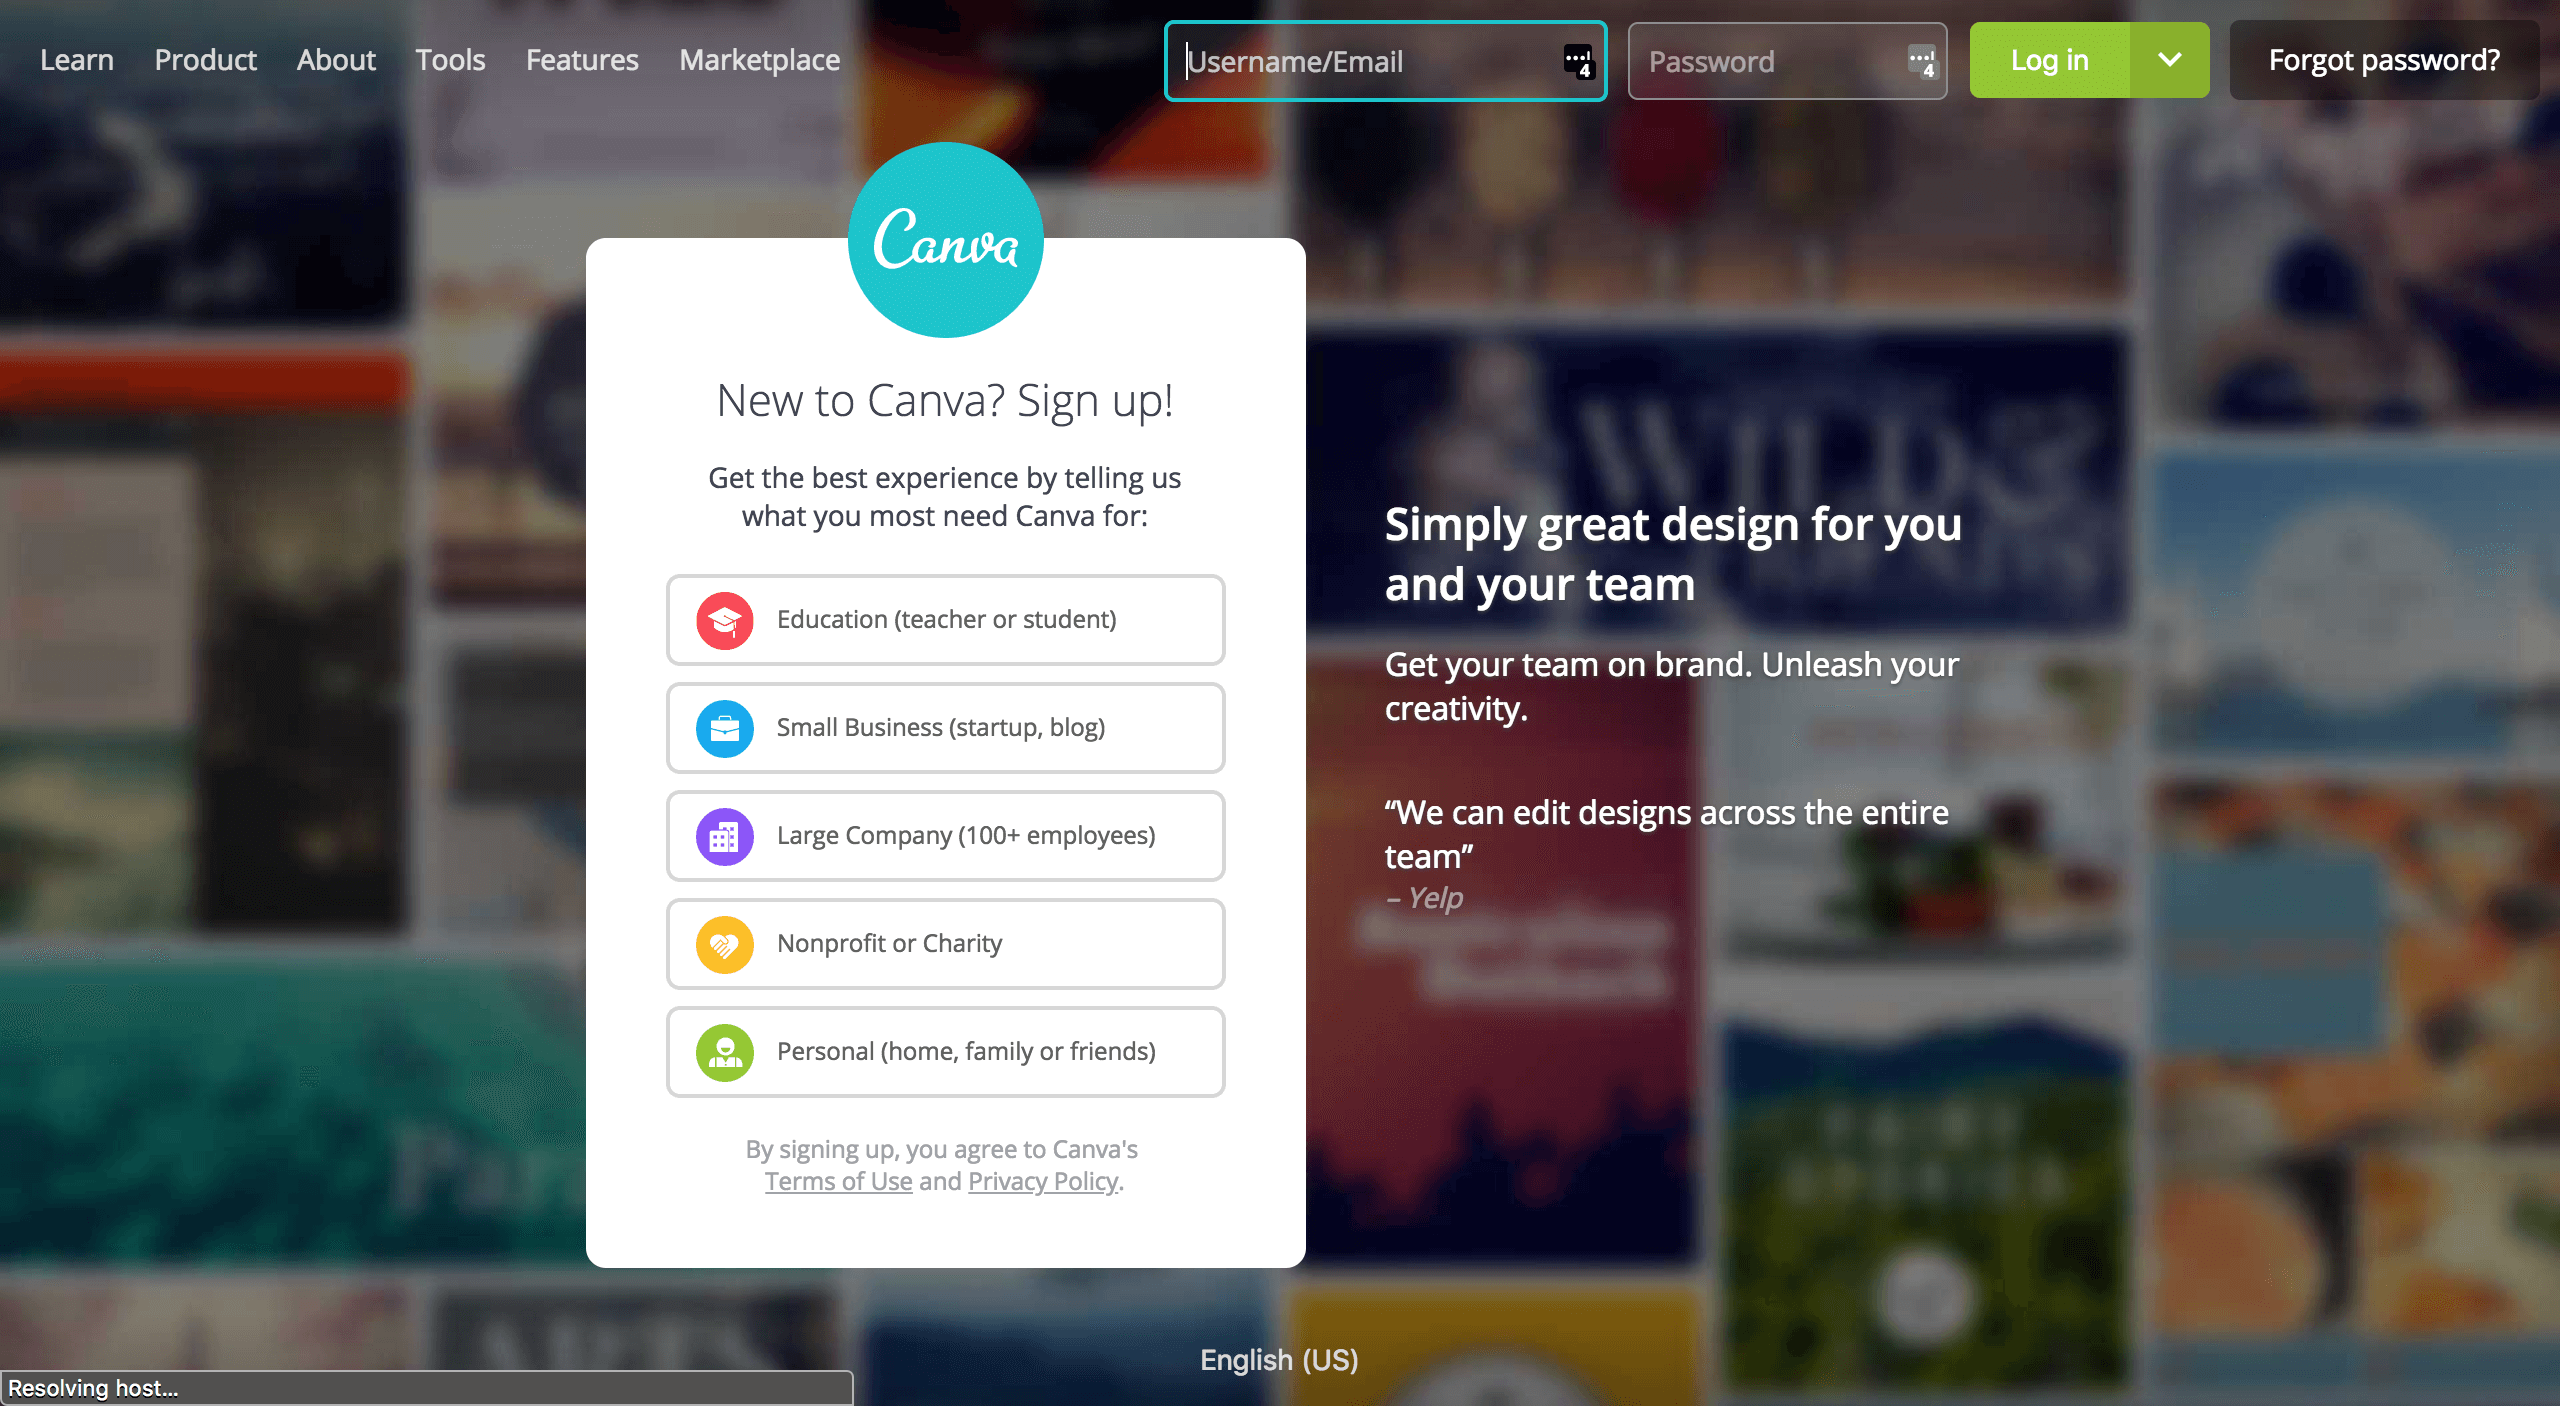 Sign up page for Canva Graphics Design App